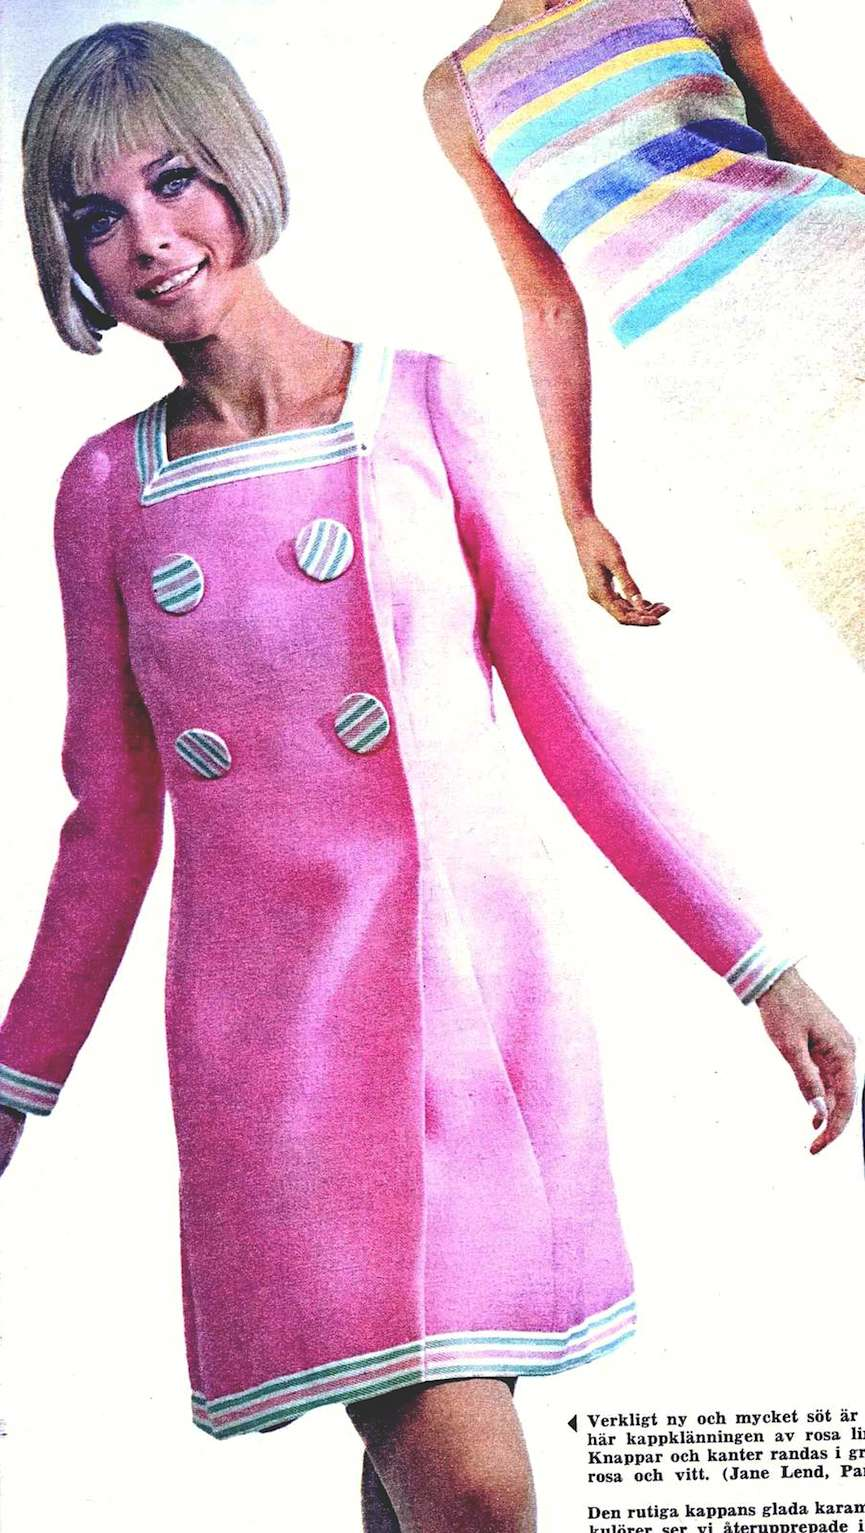 oversized buttons on men and women was 1960s mod style